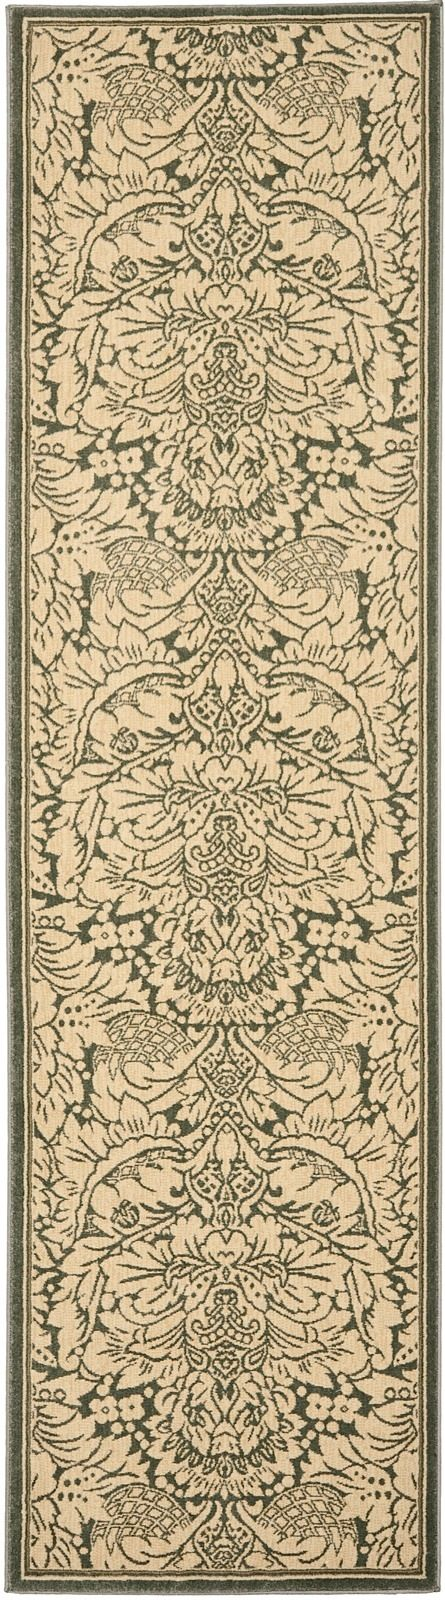 safavieh treasures transitional area rug collection